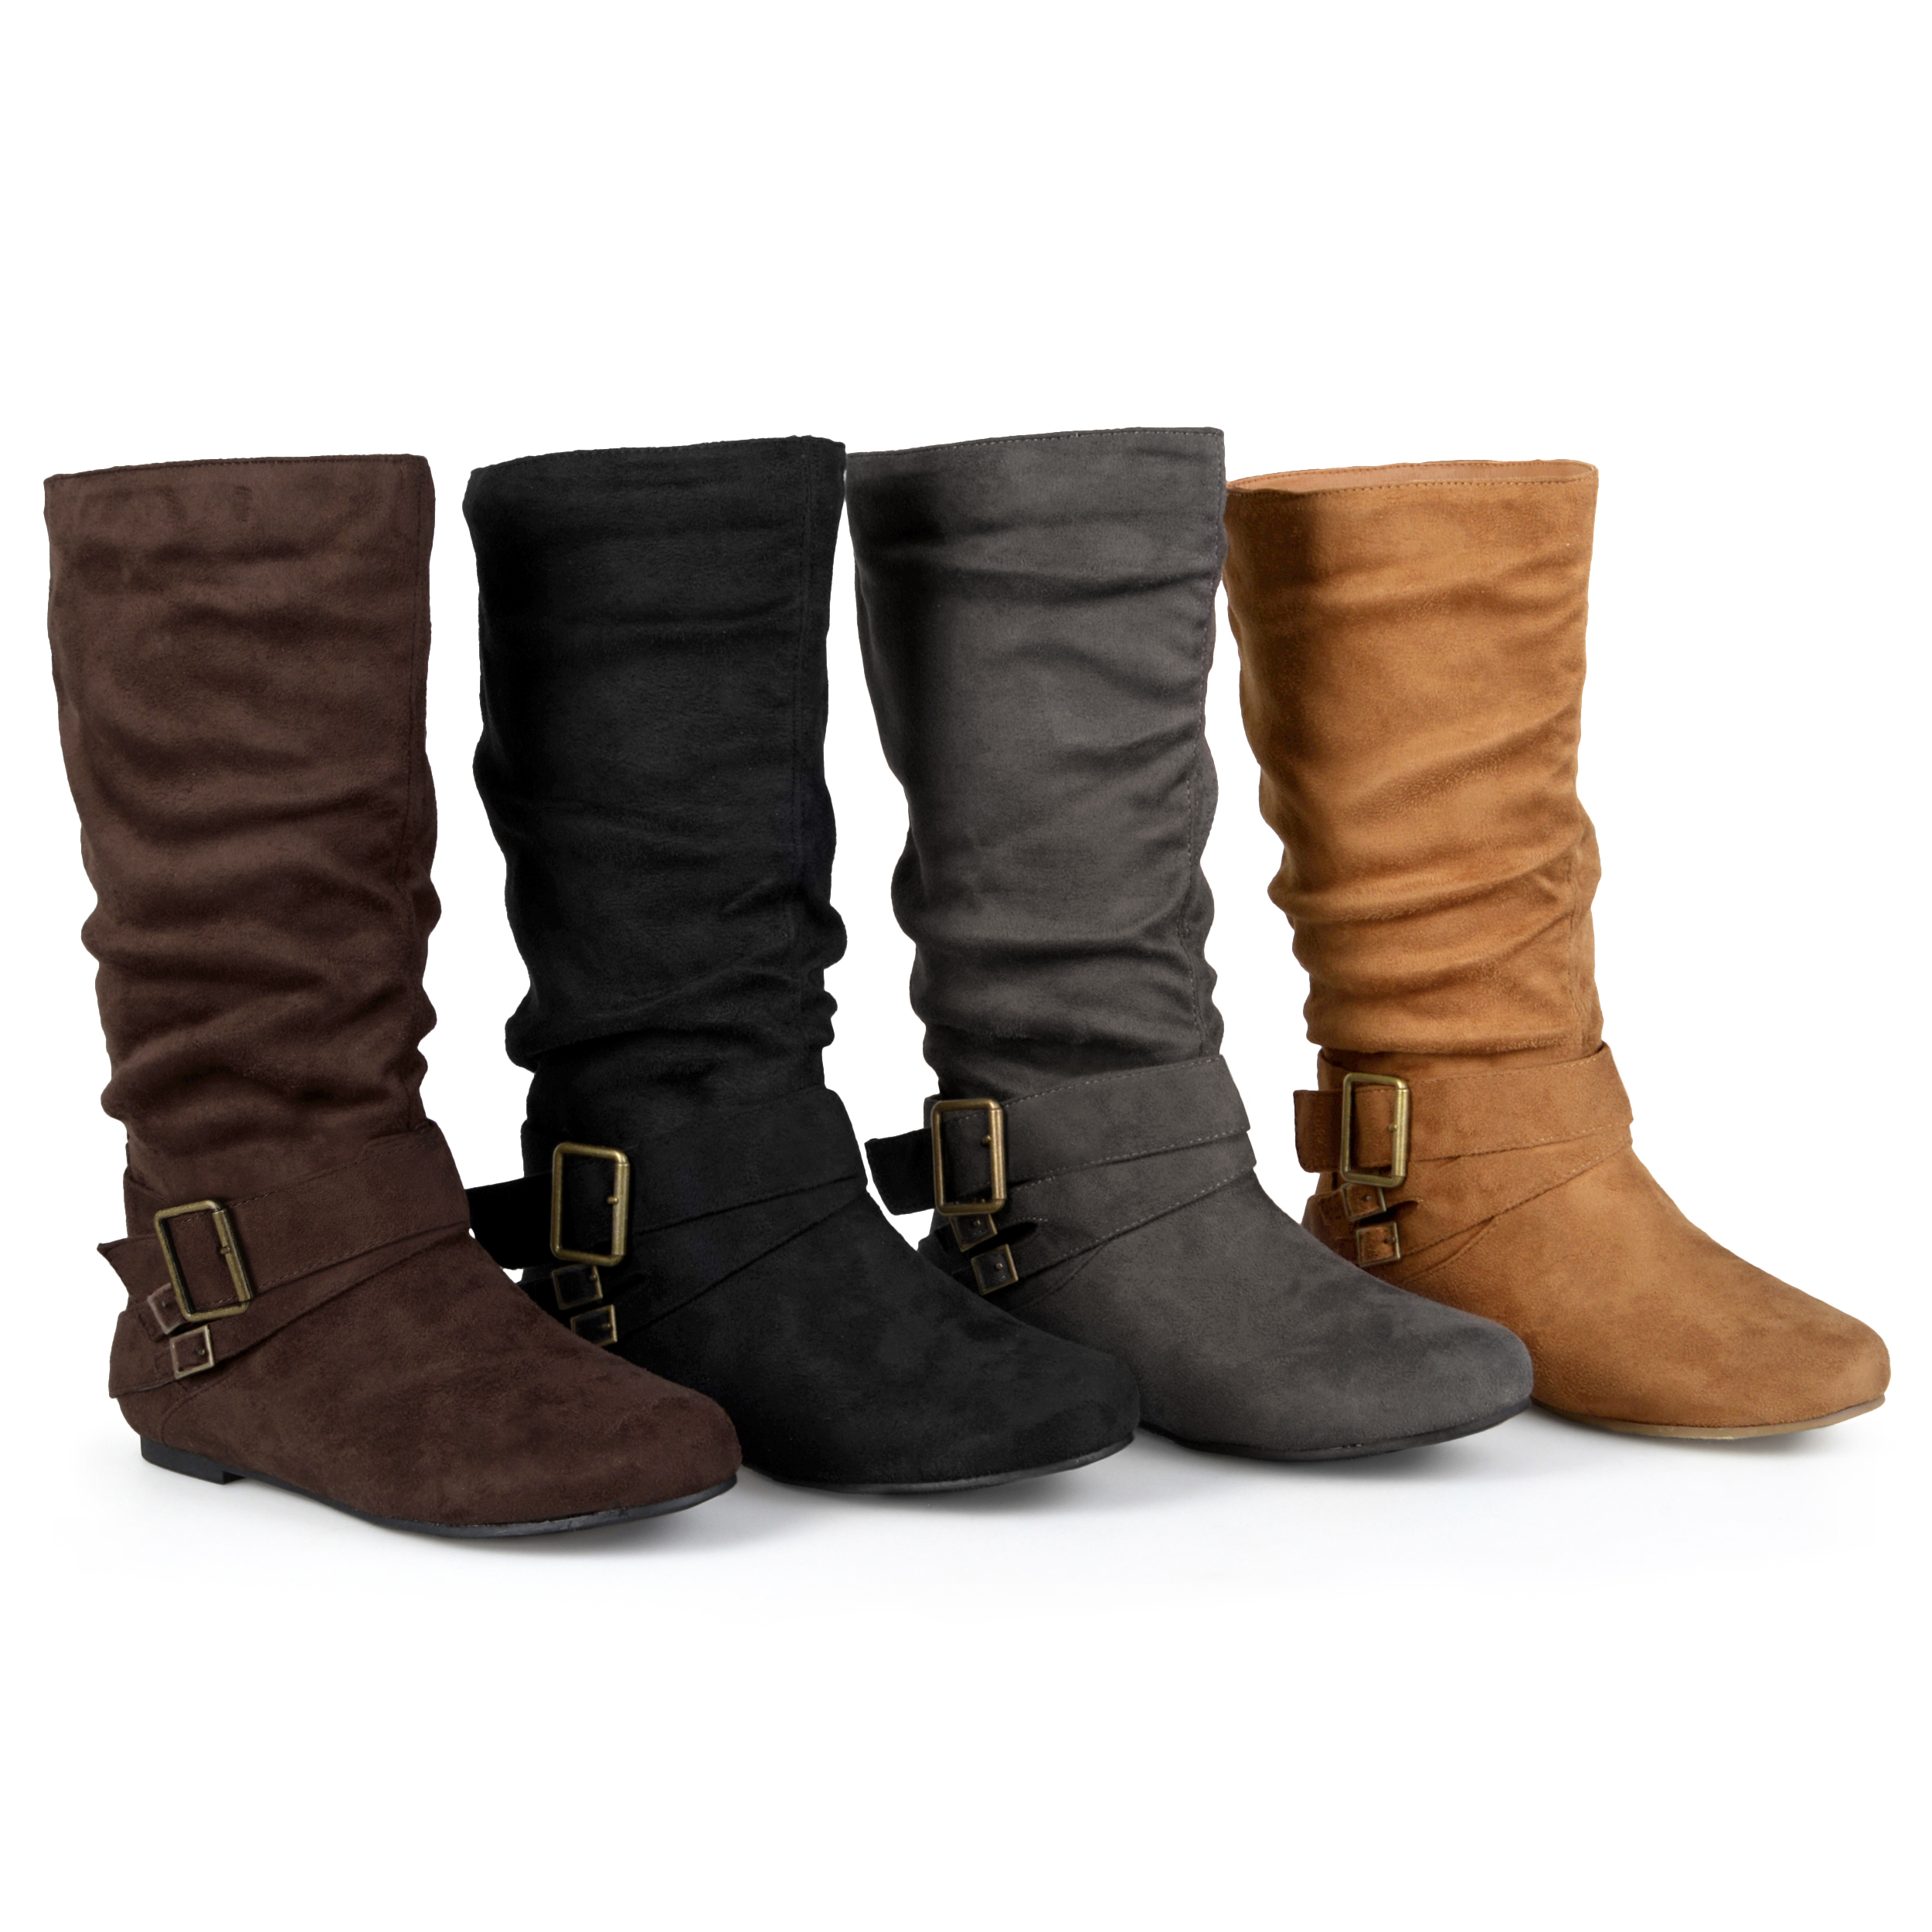 Brinley Co Womens Slouchy Boot With Side Accent Buckles Ebay